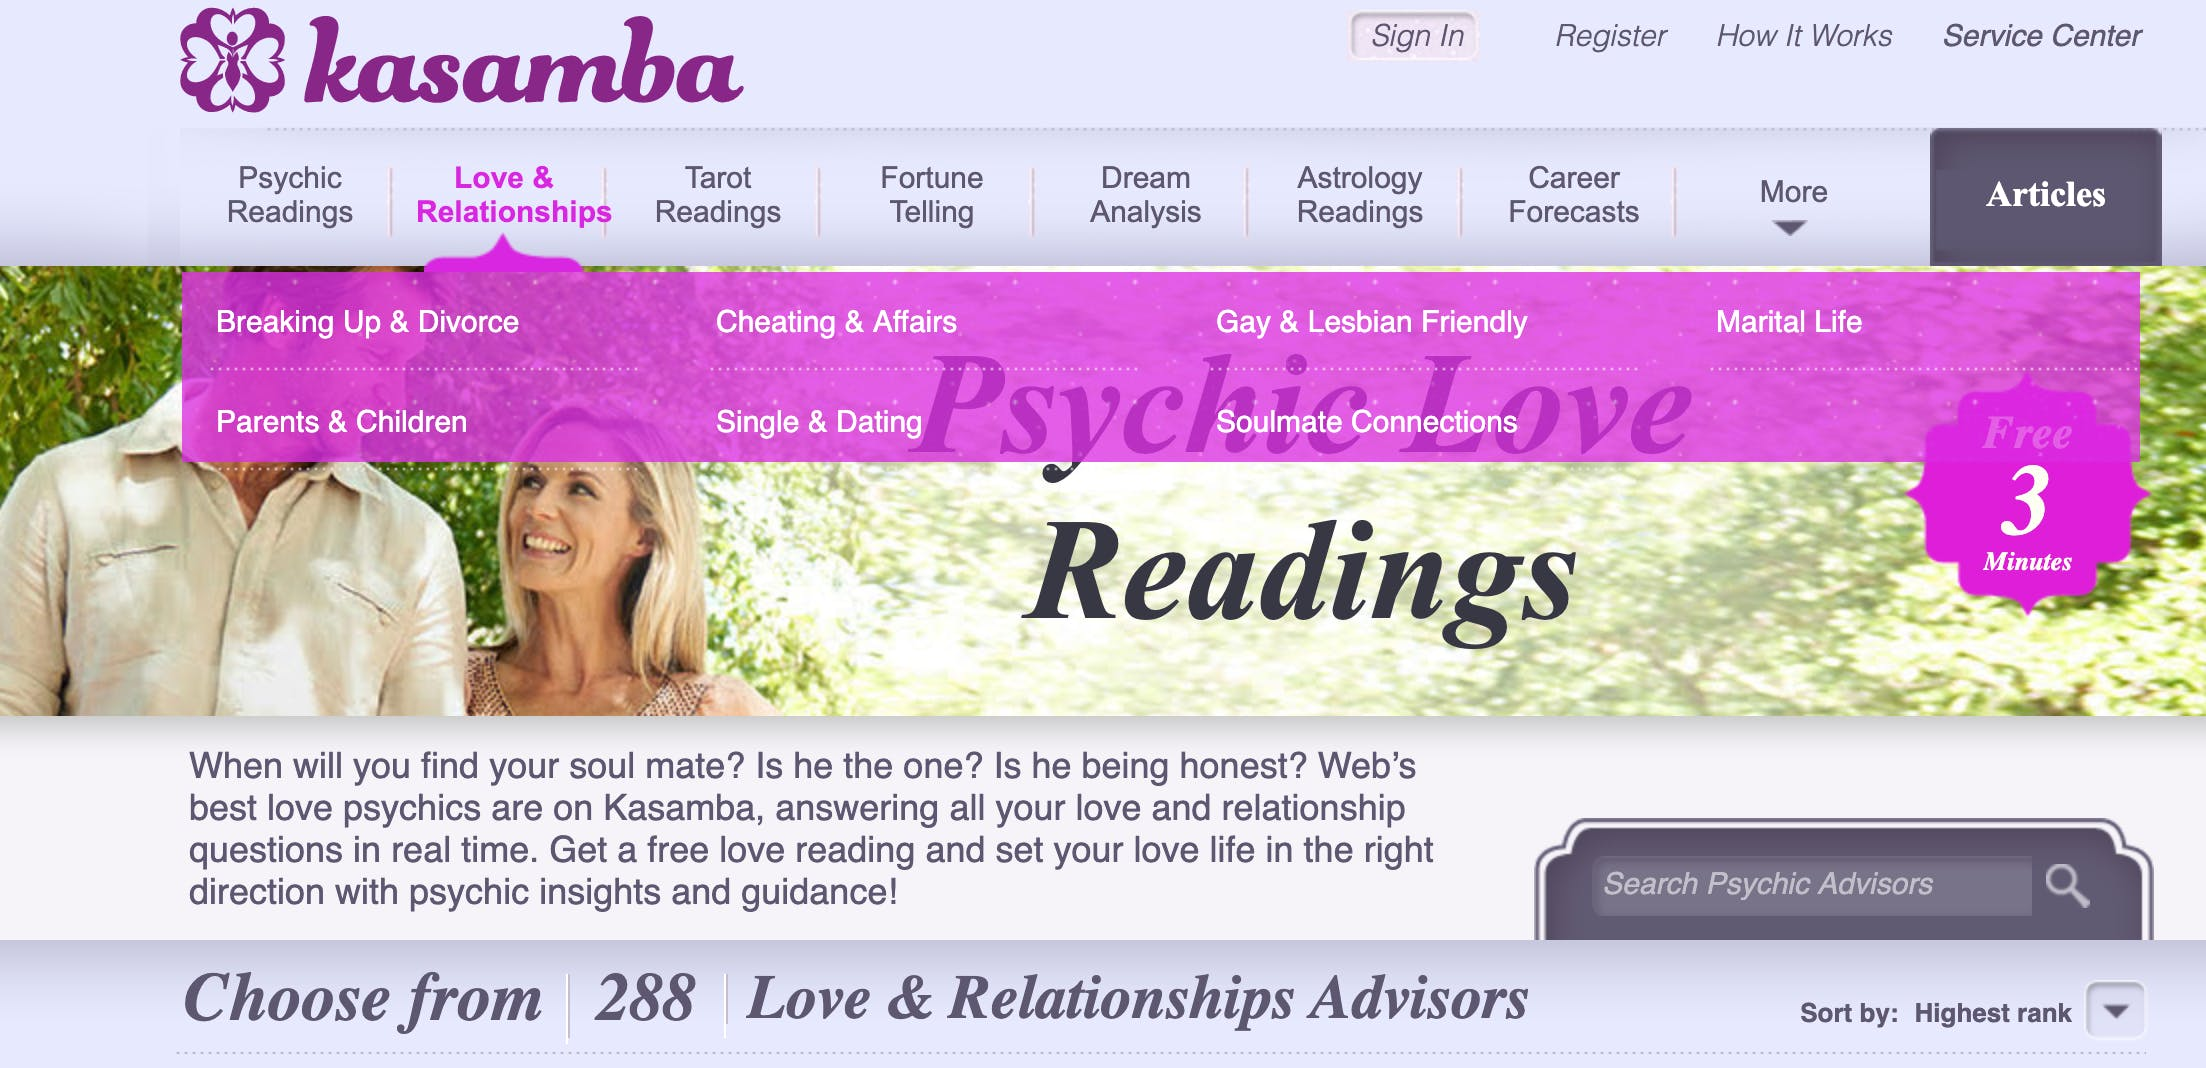 A couple gazes lovingly at each other as they walk together behind a banner for psychic love readings